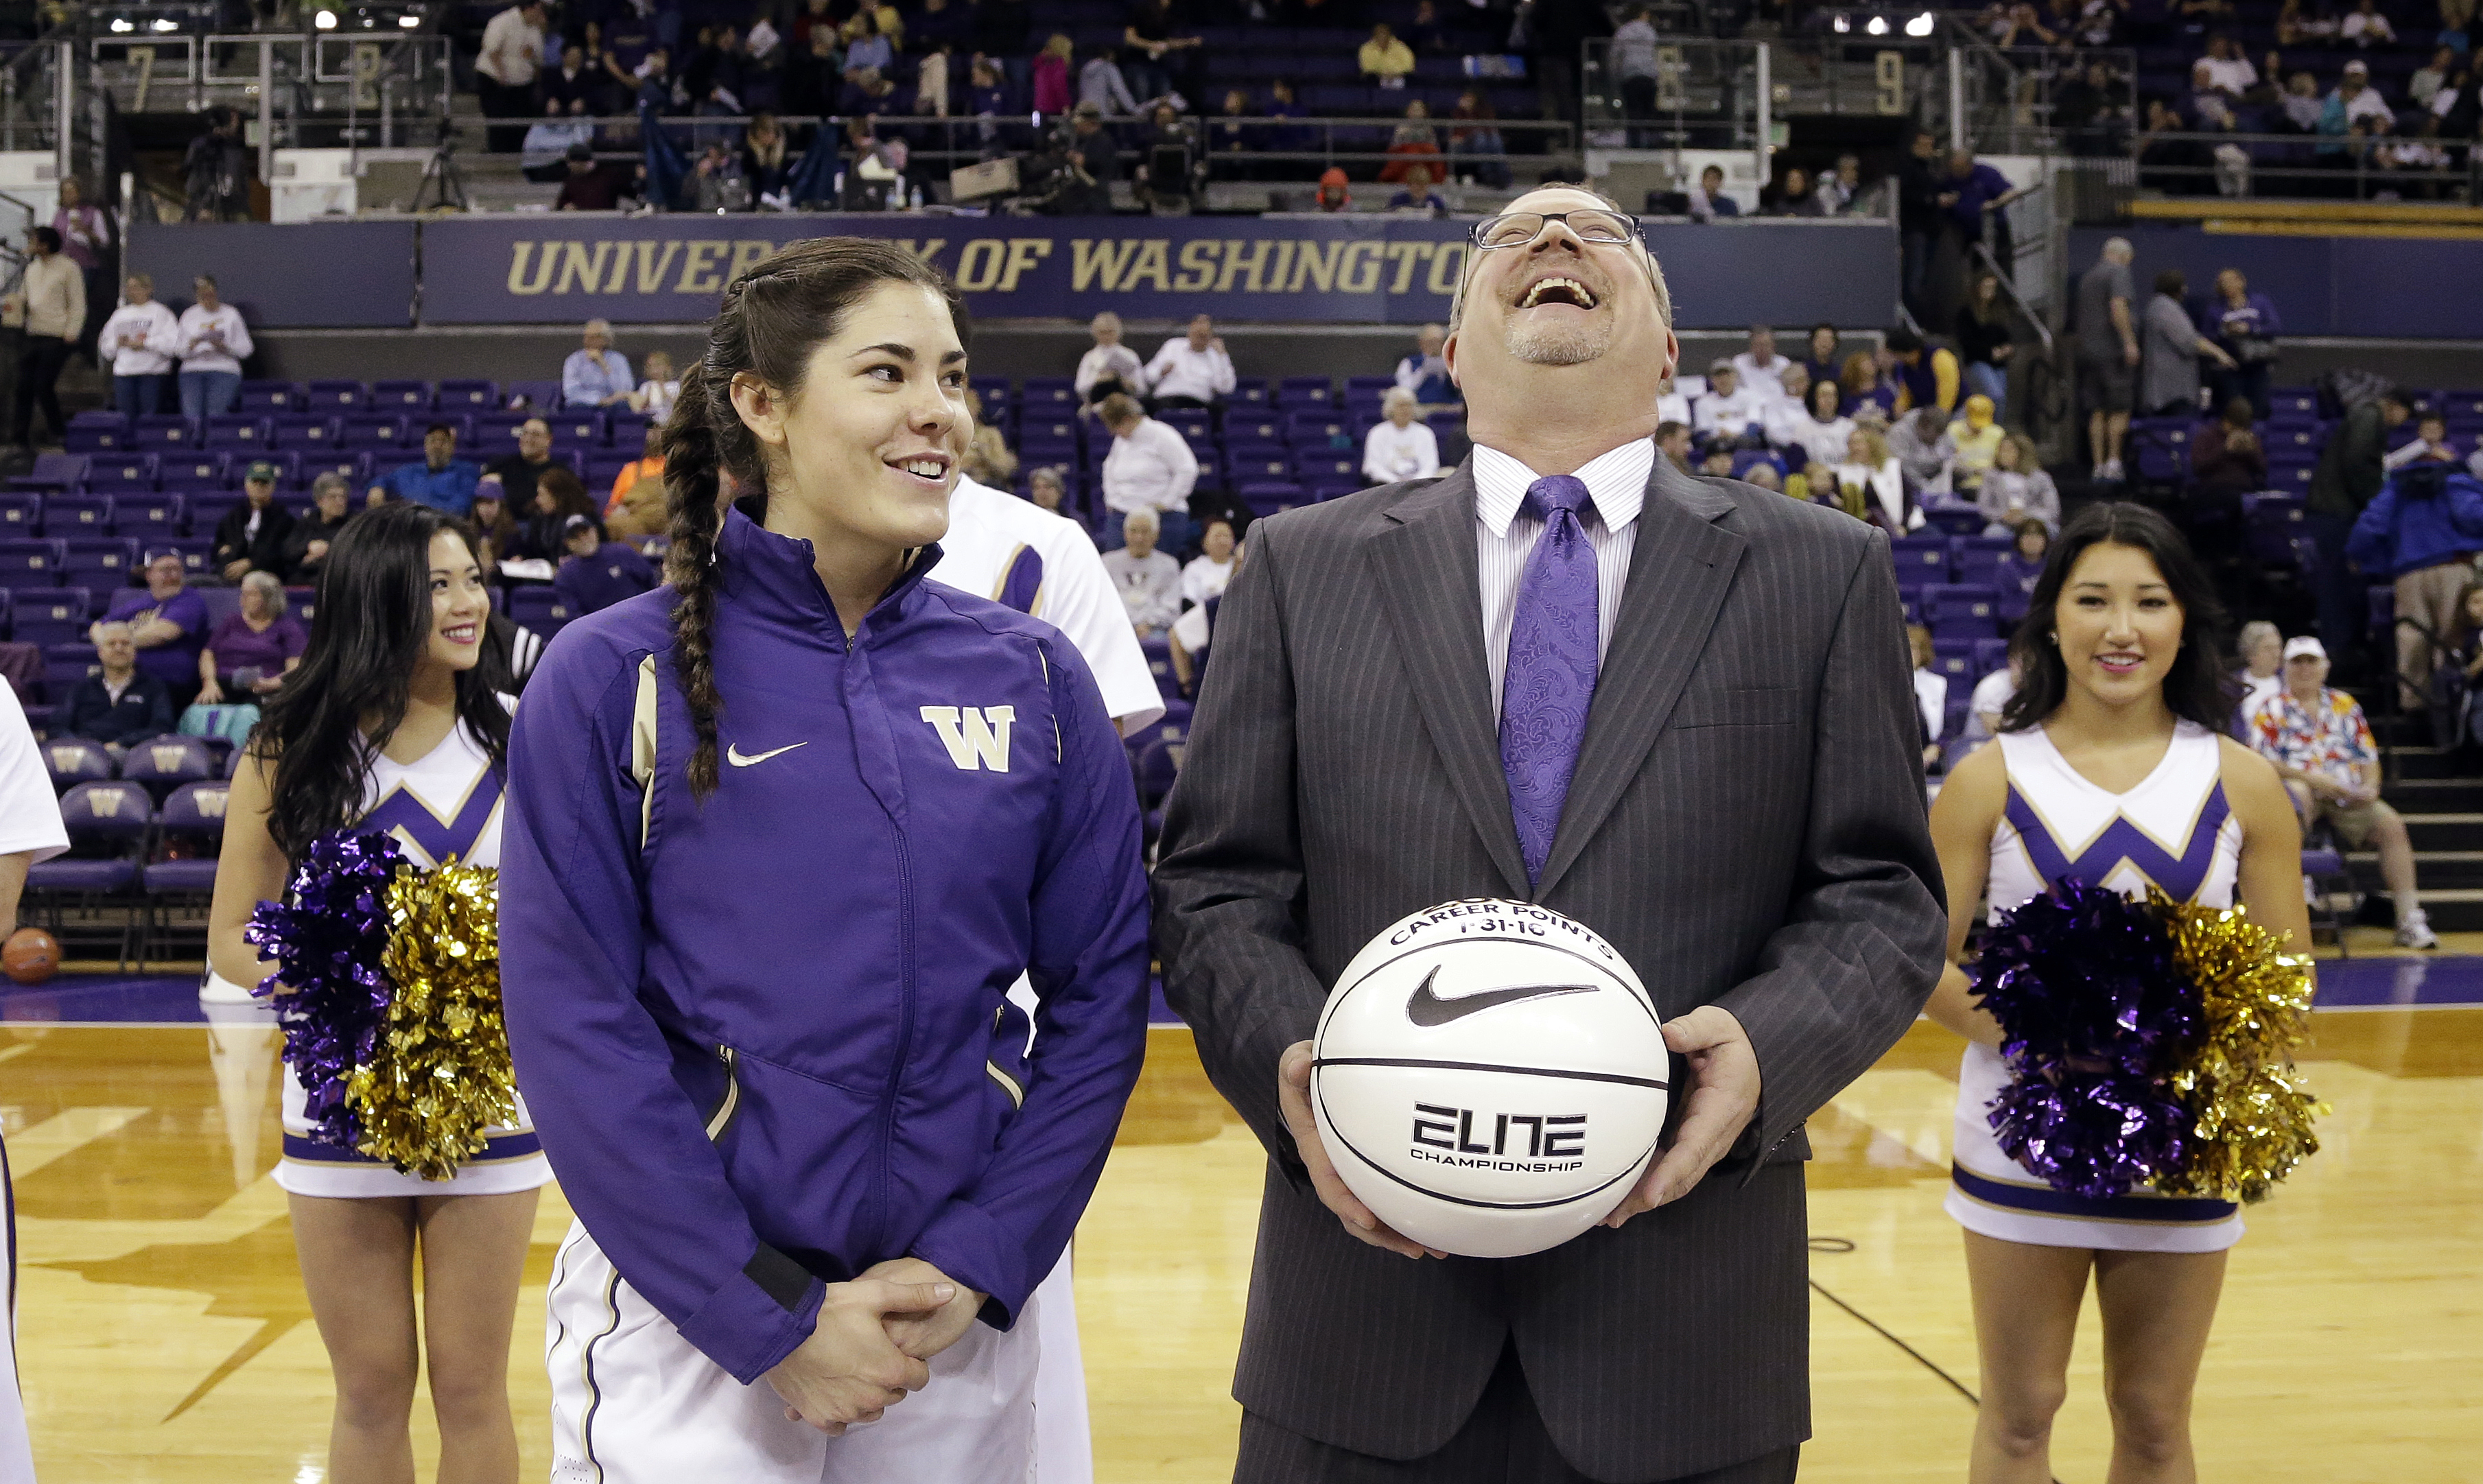 FILE - In this Feb. 5, 2016, file photo, Washington head coach Mike Neighbors, right, throws his head back and laughs in response to a comment from Kelsey Plum as Neighbors is about to hand Plum a basketball commemorating her 2,000 career points, in Seatt